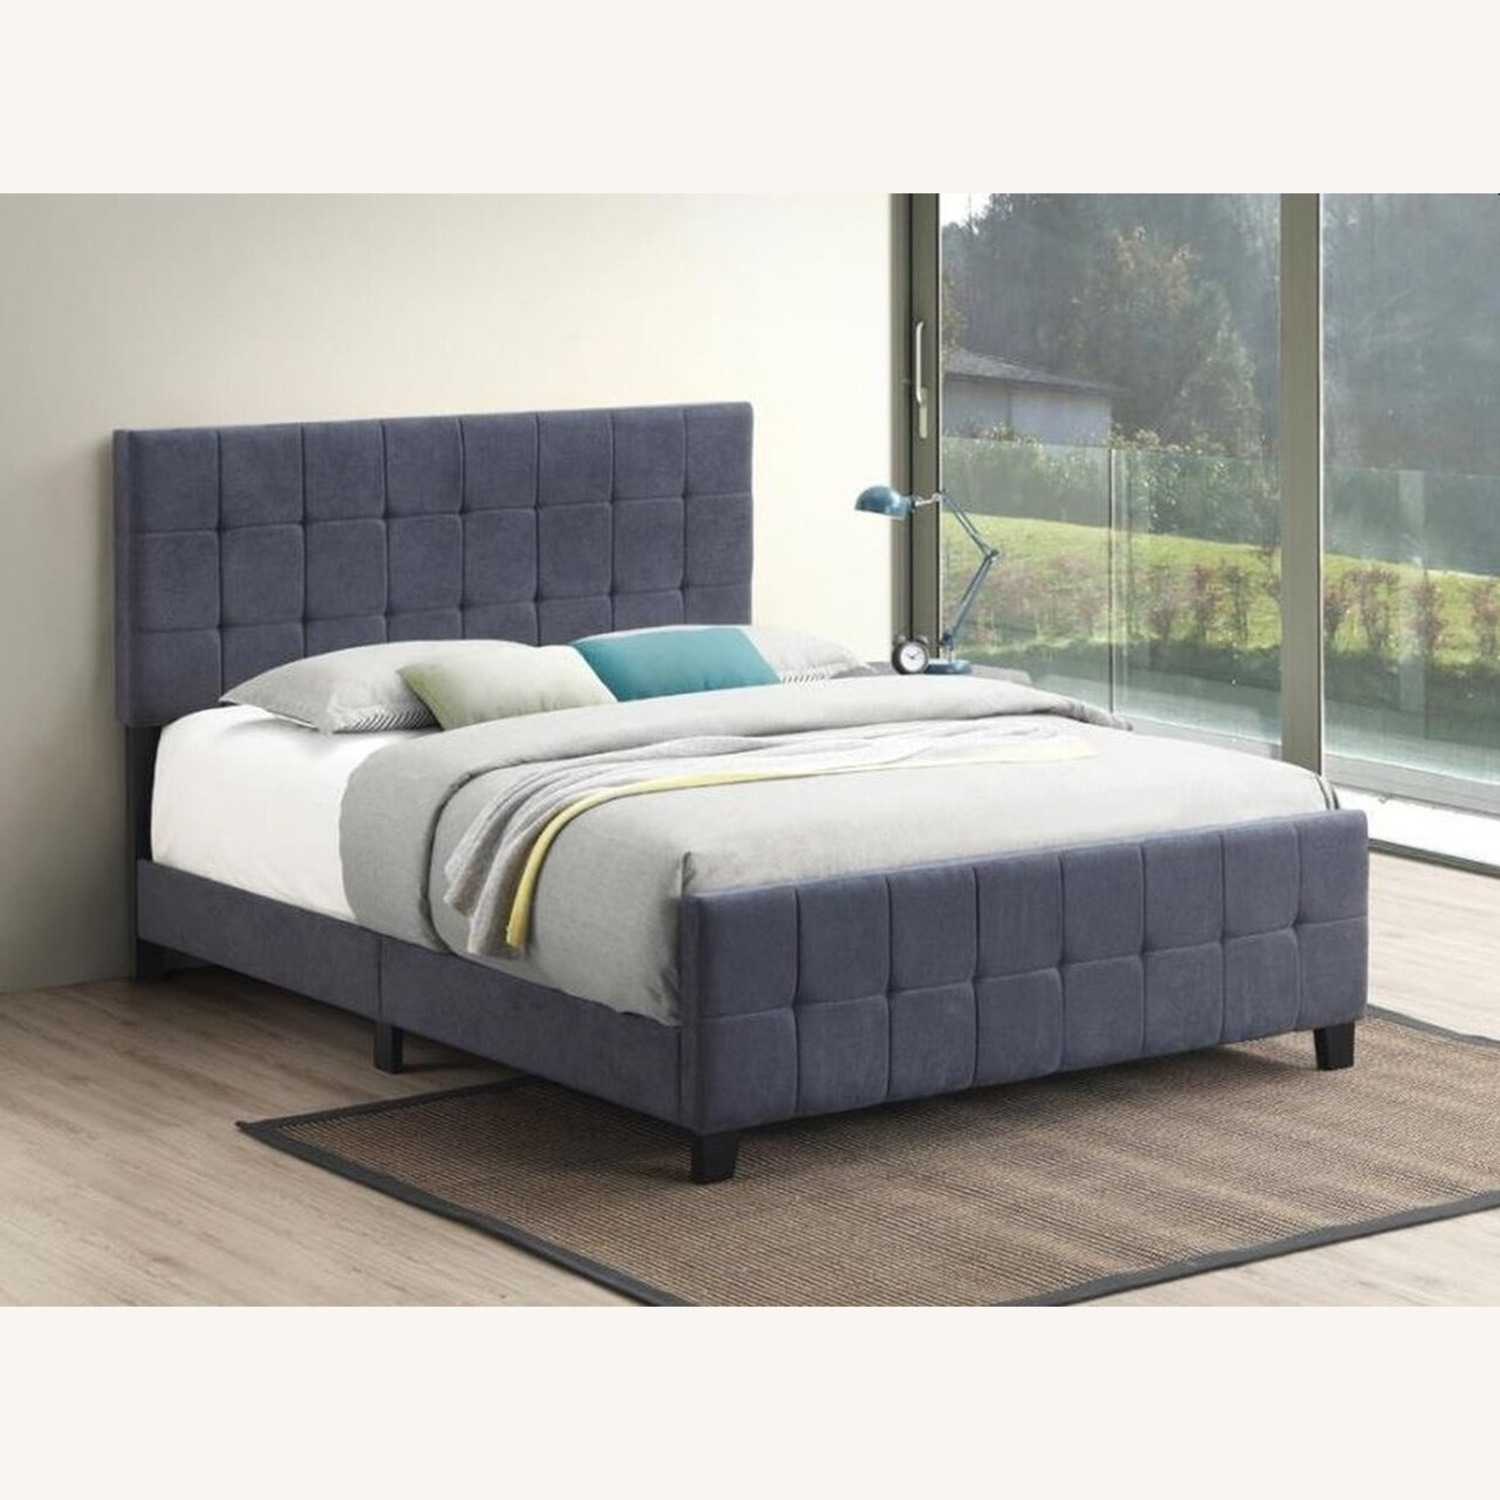 Queen Bed In A Pop Of Color Grey Fabric - image-2